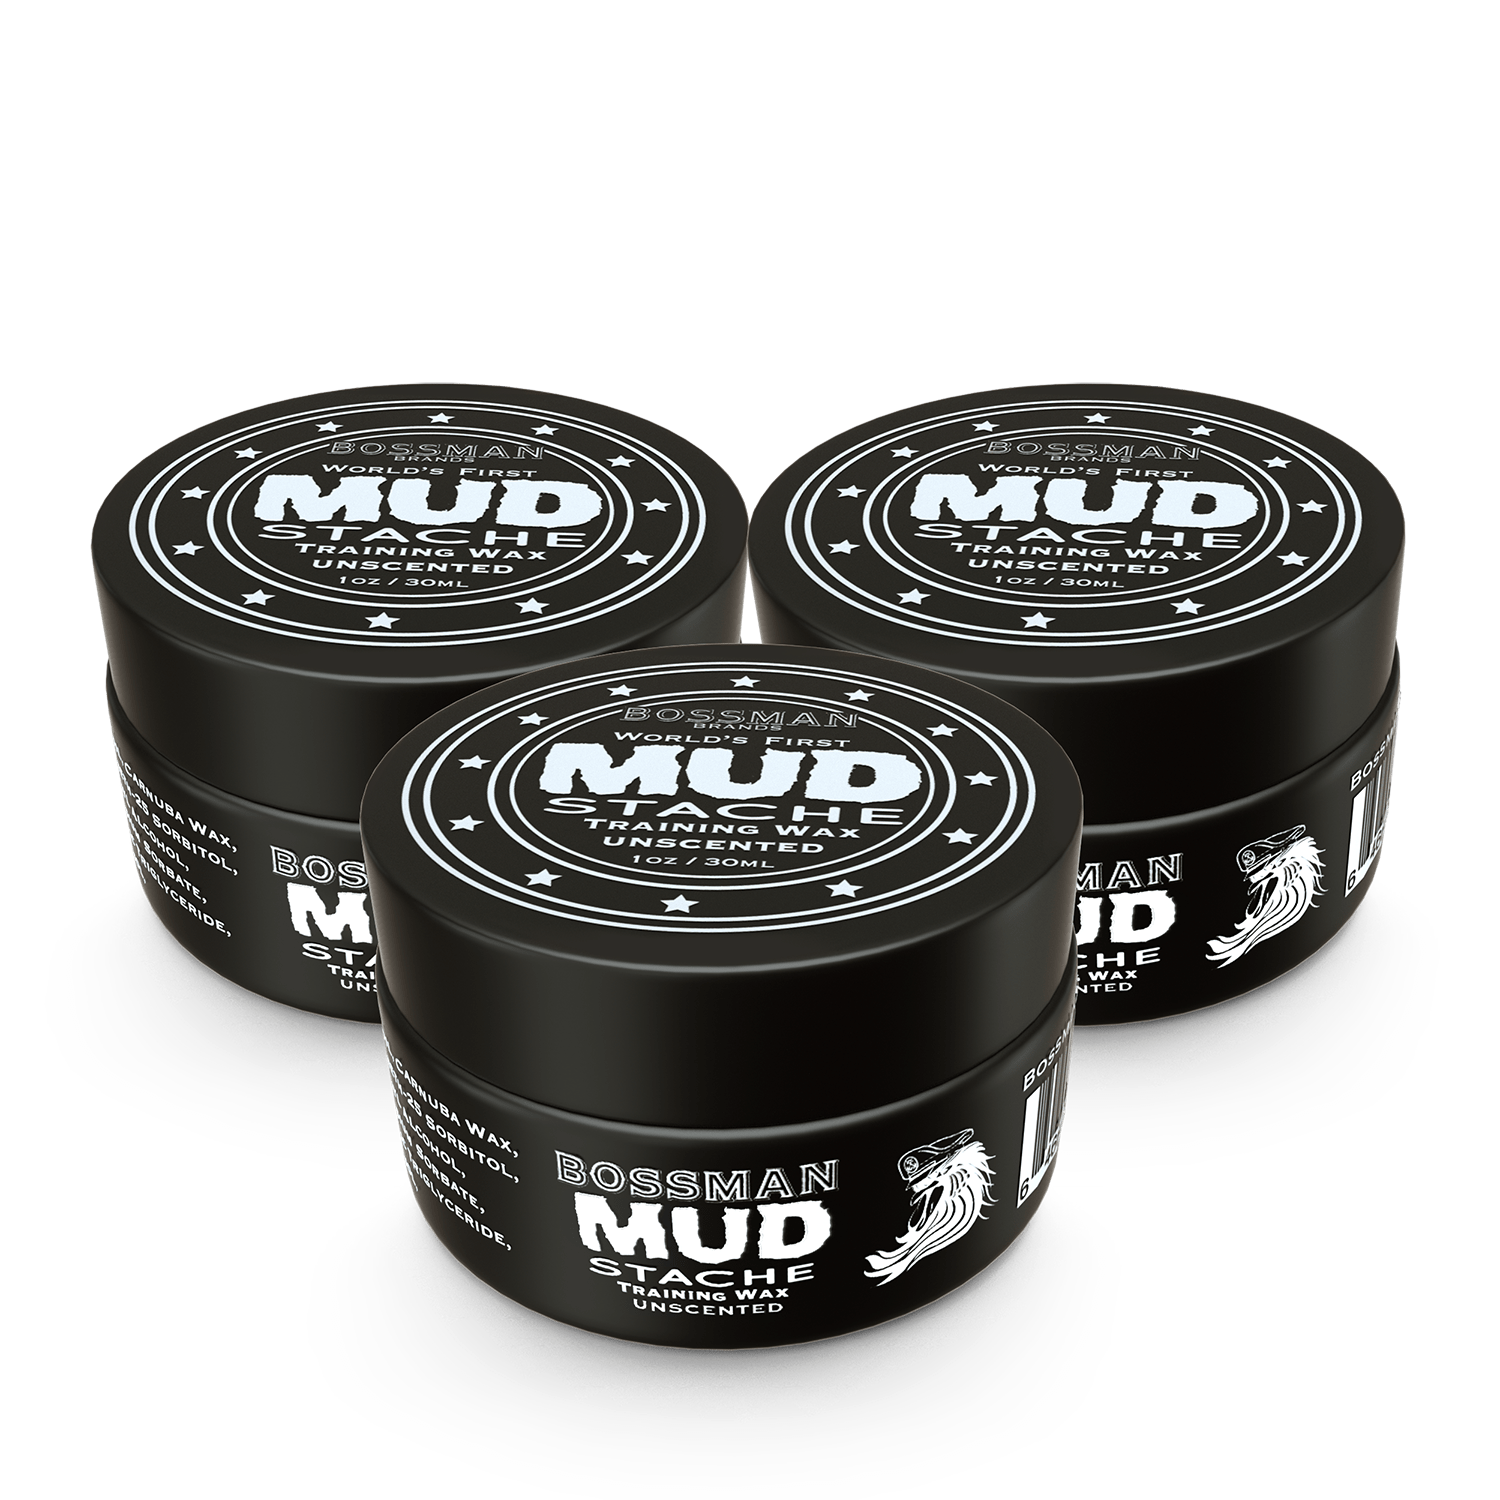 Bossman MUDstache Unscented Mustache Training Wax - 3 Pack